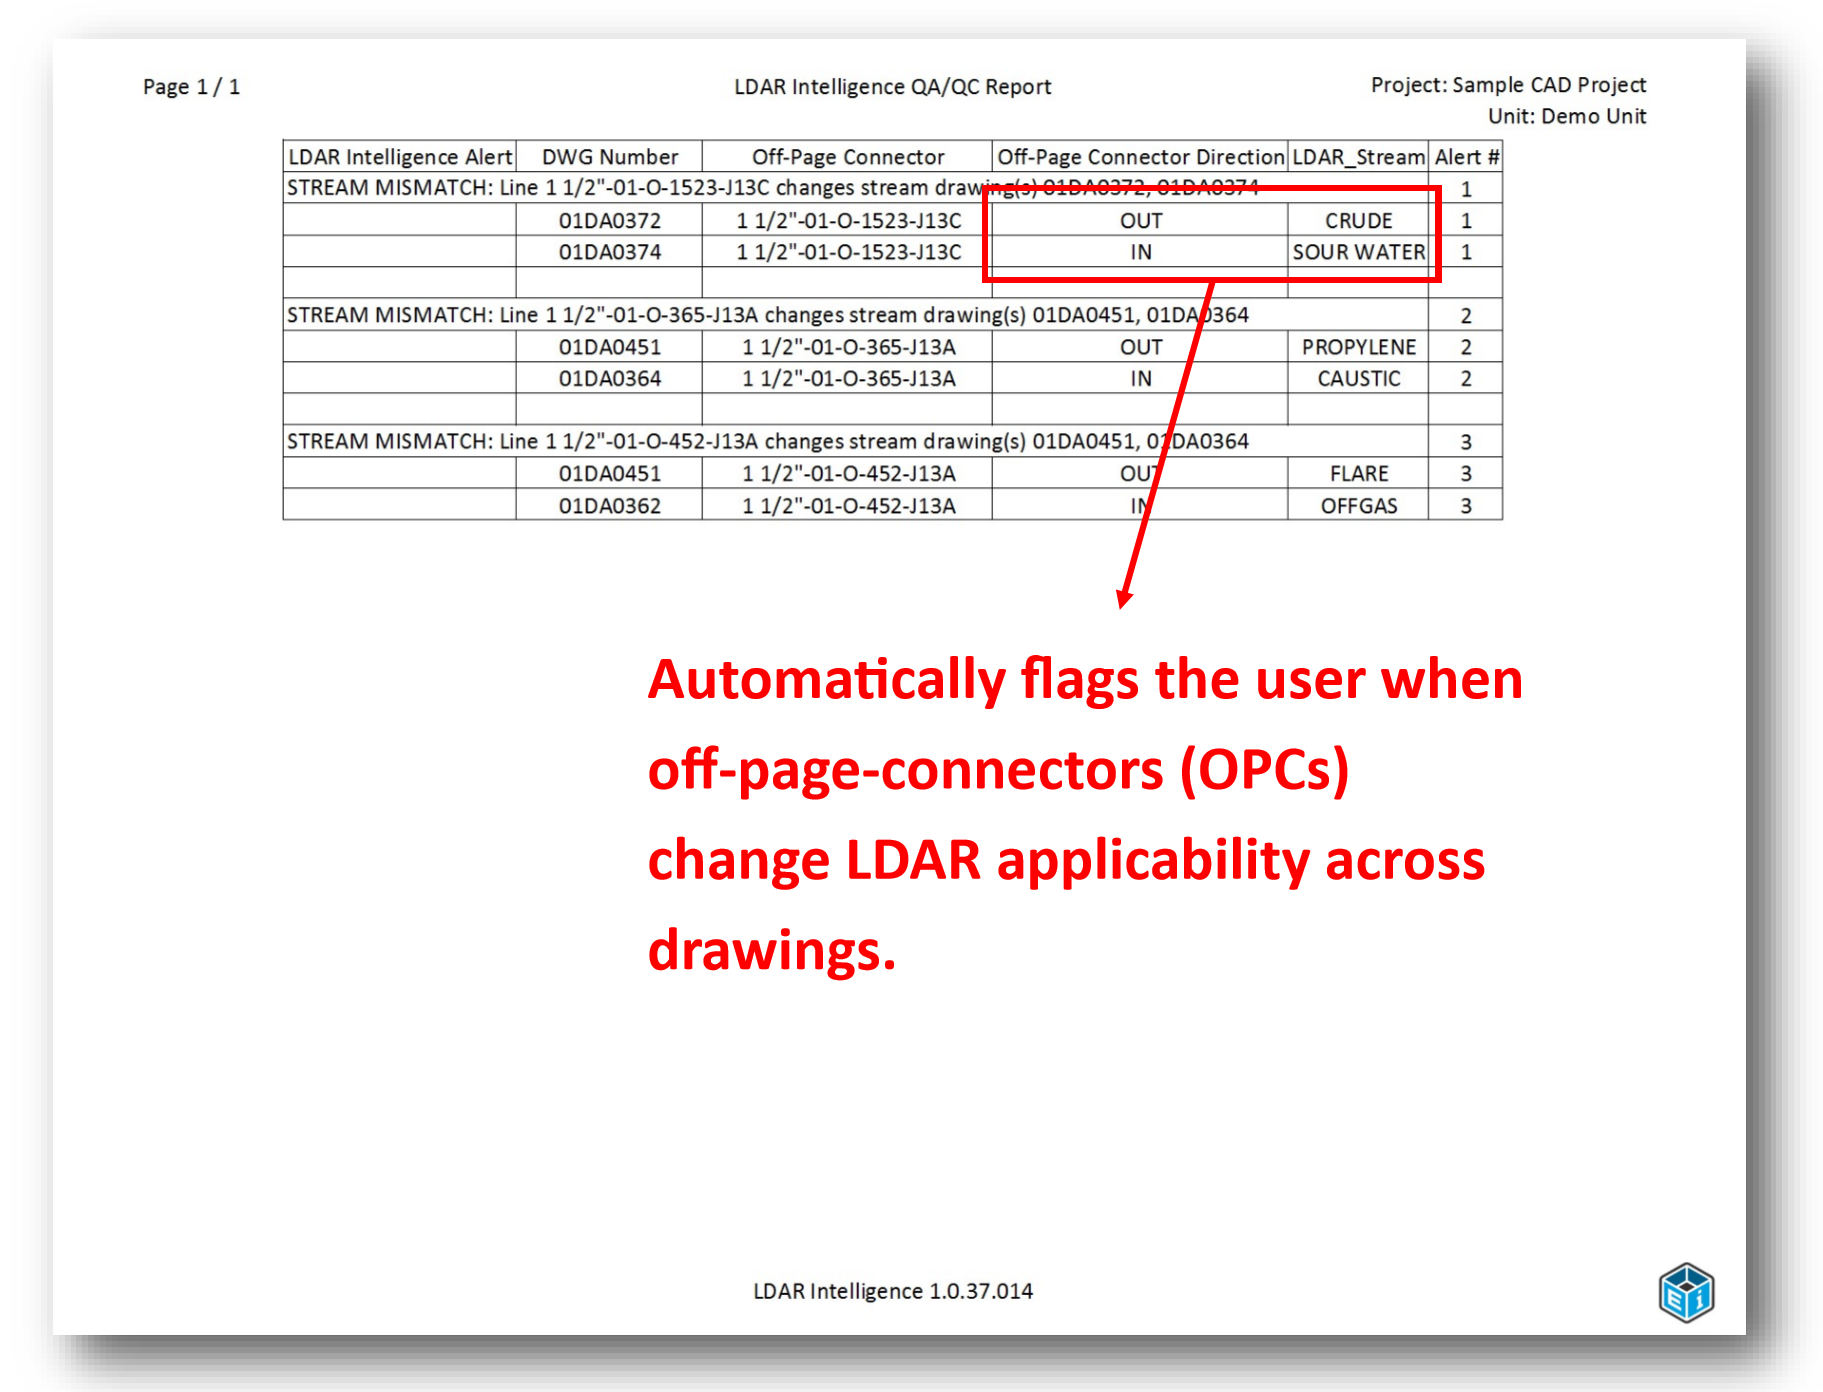 LDAR Intelligence Solves one of the Biggest Challenges of Highlighting PROJECTS - tracing Off-Page Connectors